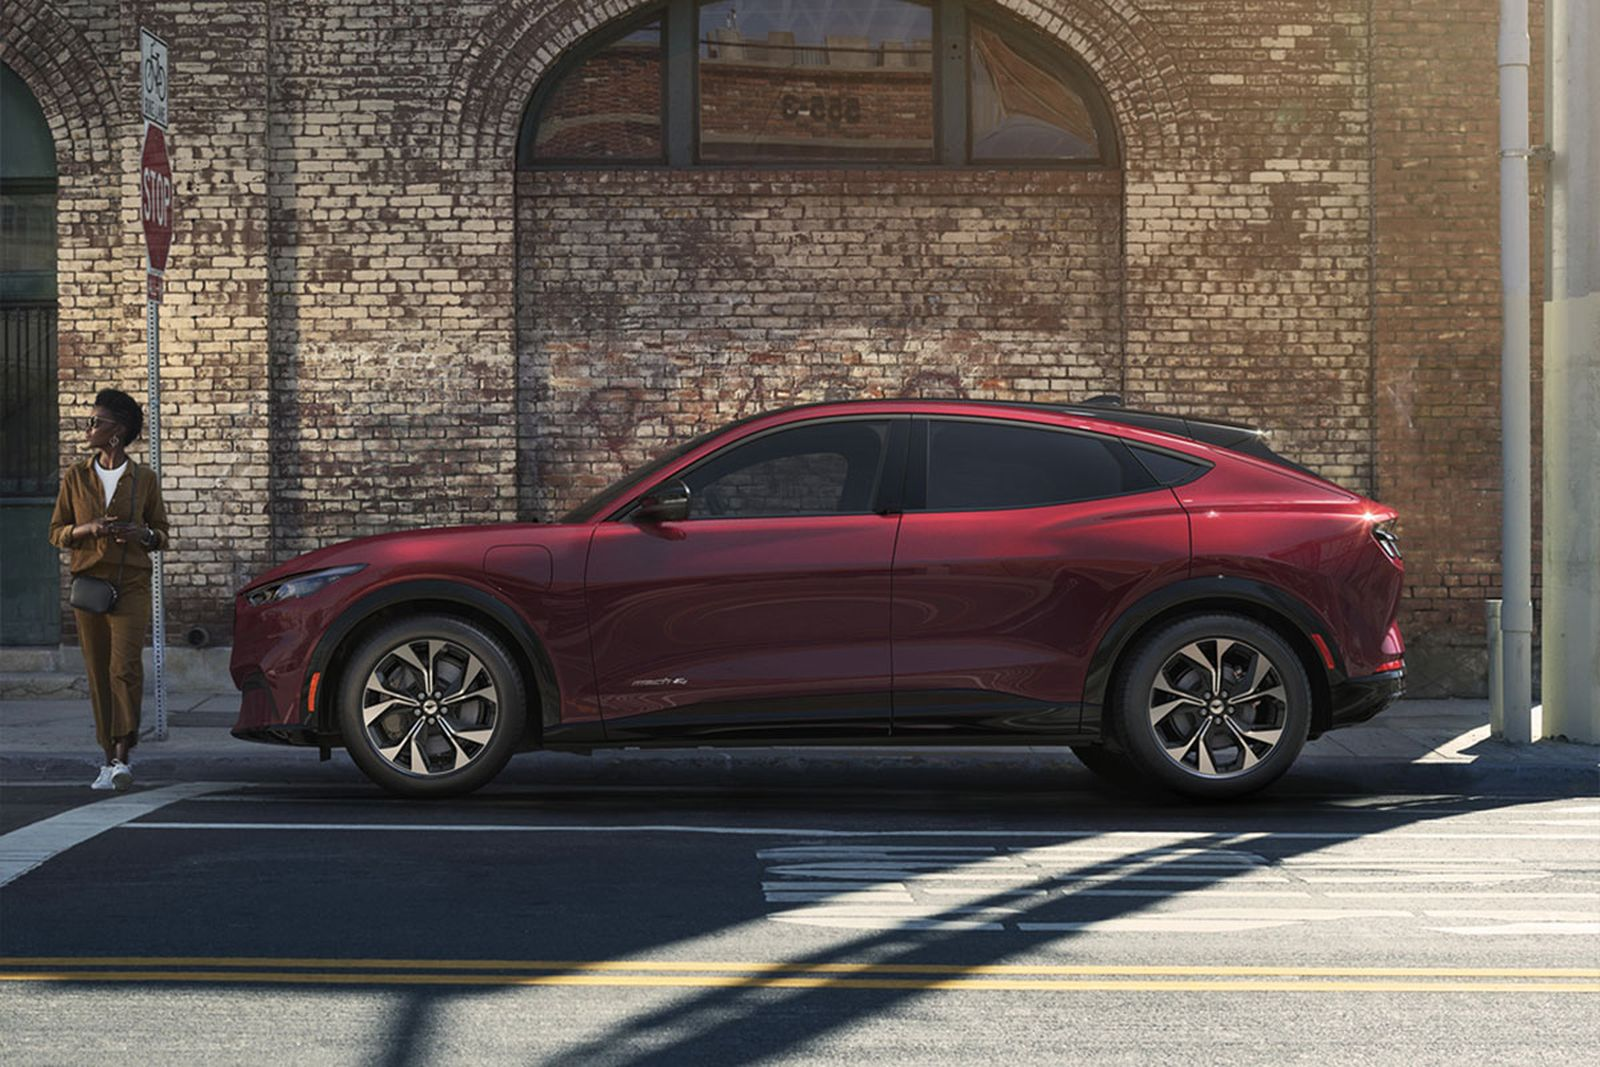 ford-mustang-mach-e-electric-suv-01